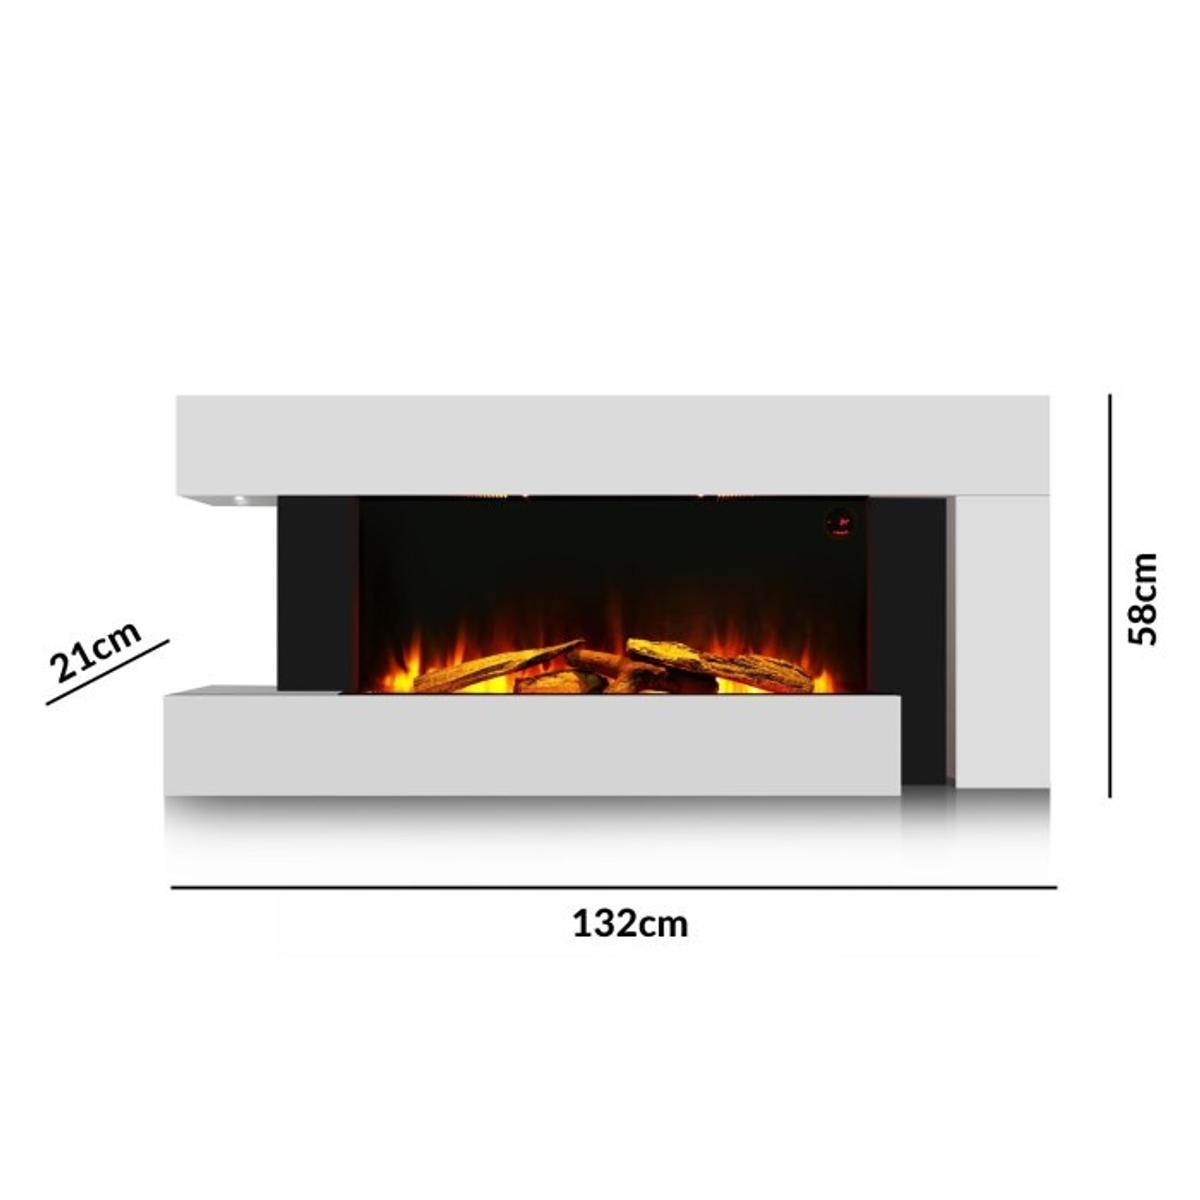 White Electric Wall Mounted Fireplace Suite In Hd2 Huddersfield